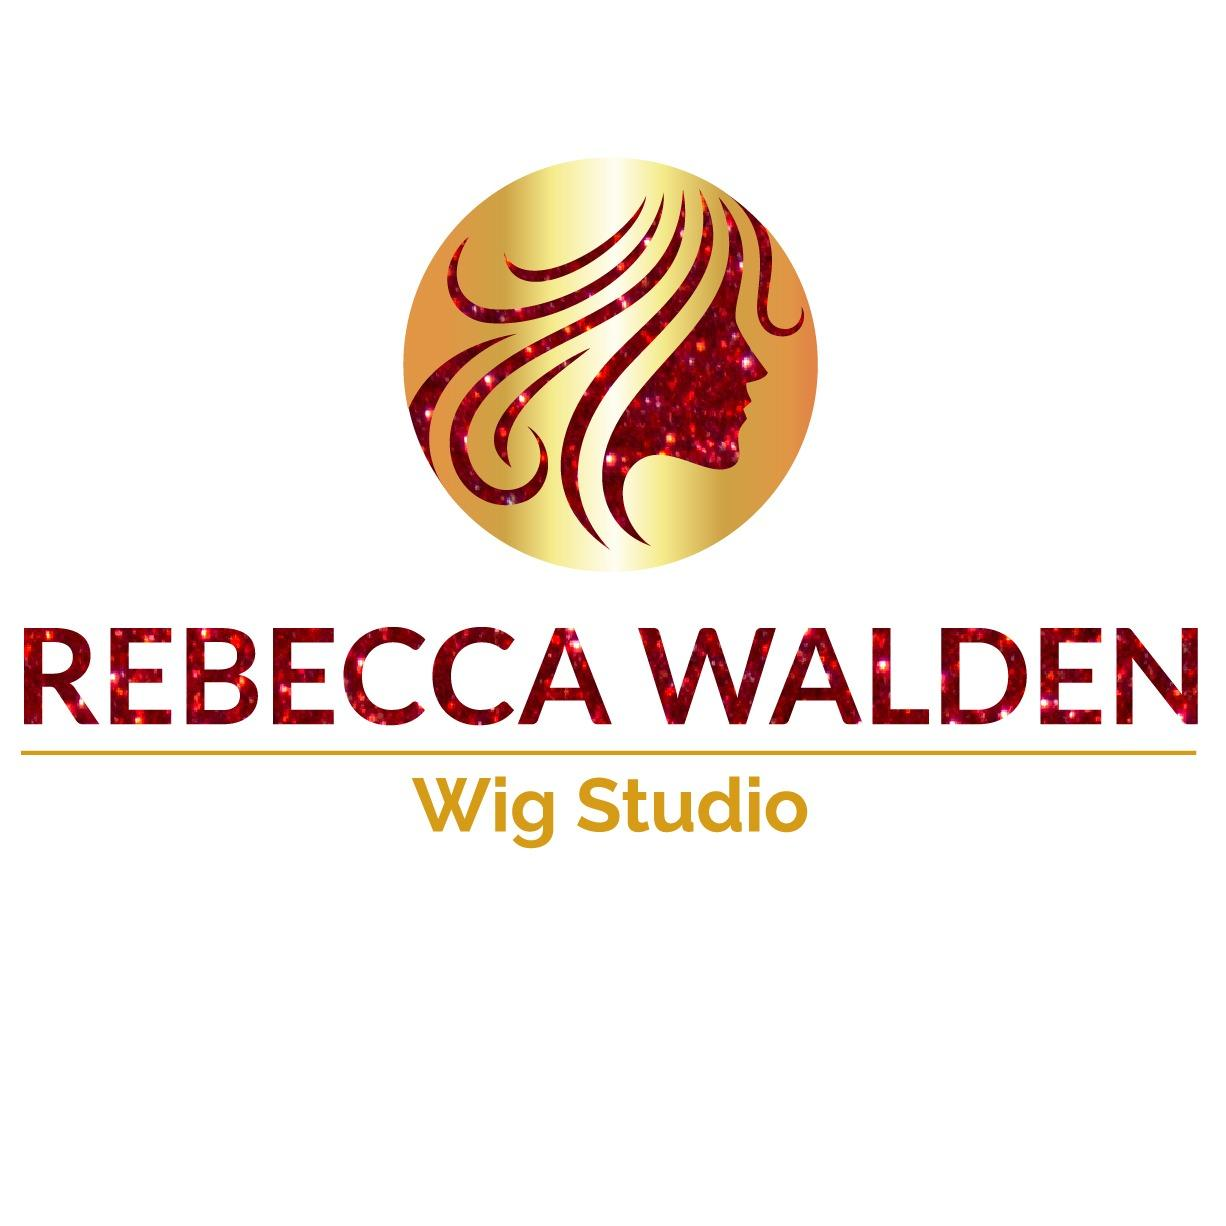 Rebecca Walden Wig Studio - Medical Hair Loss Experts - By Appt Only